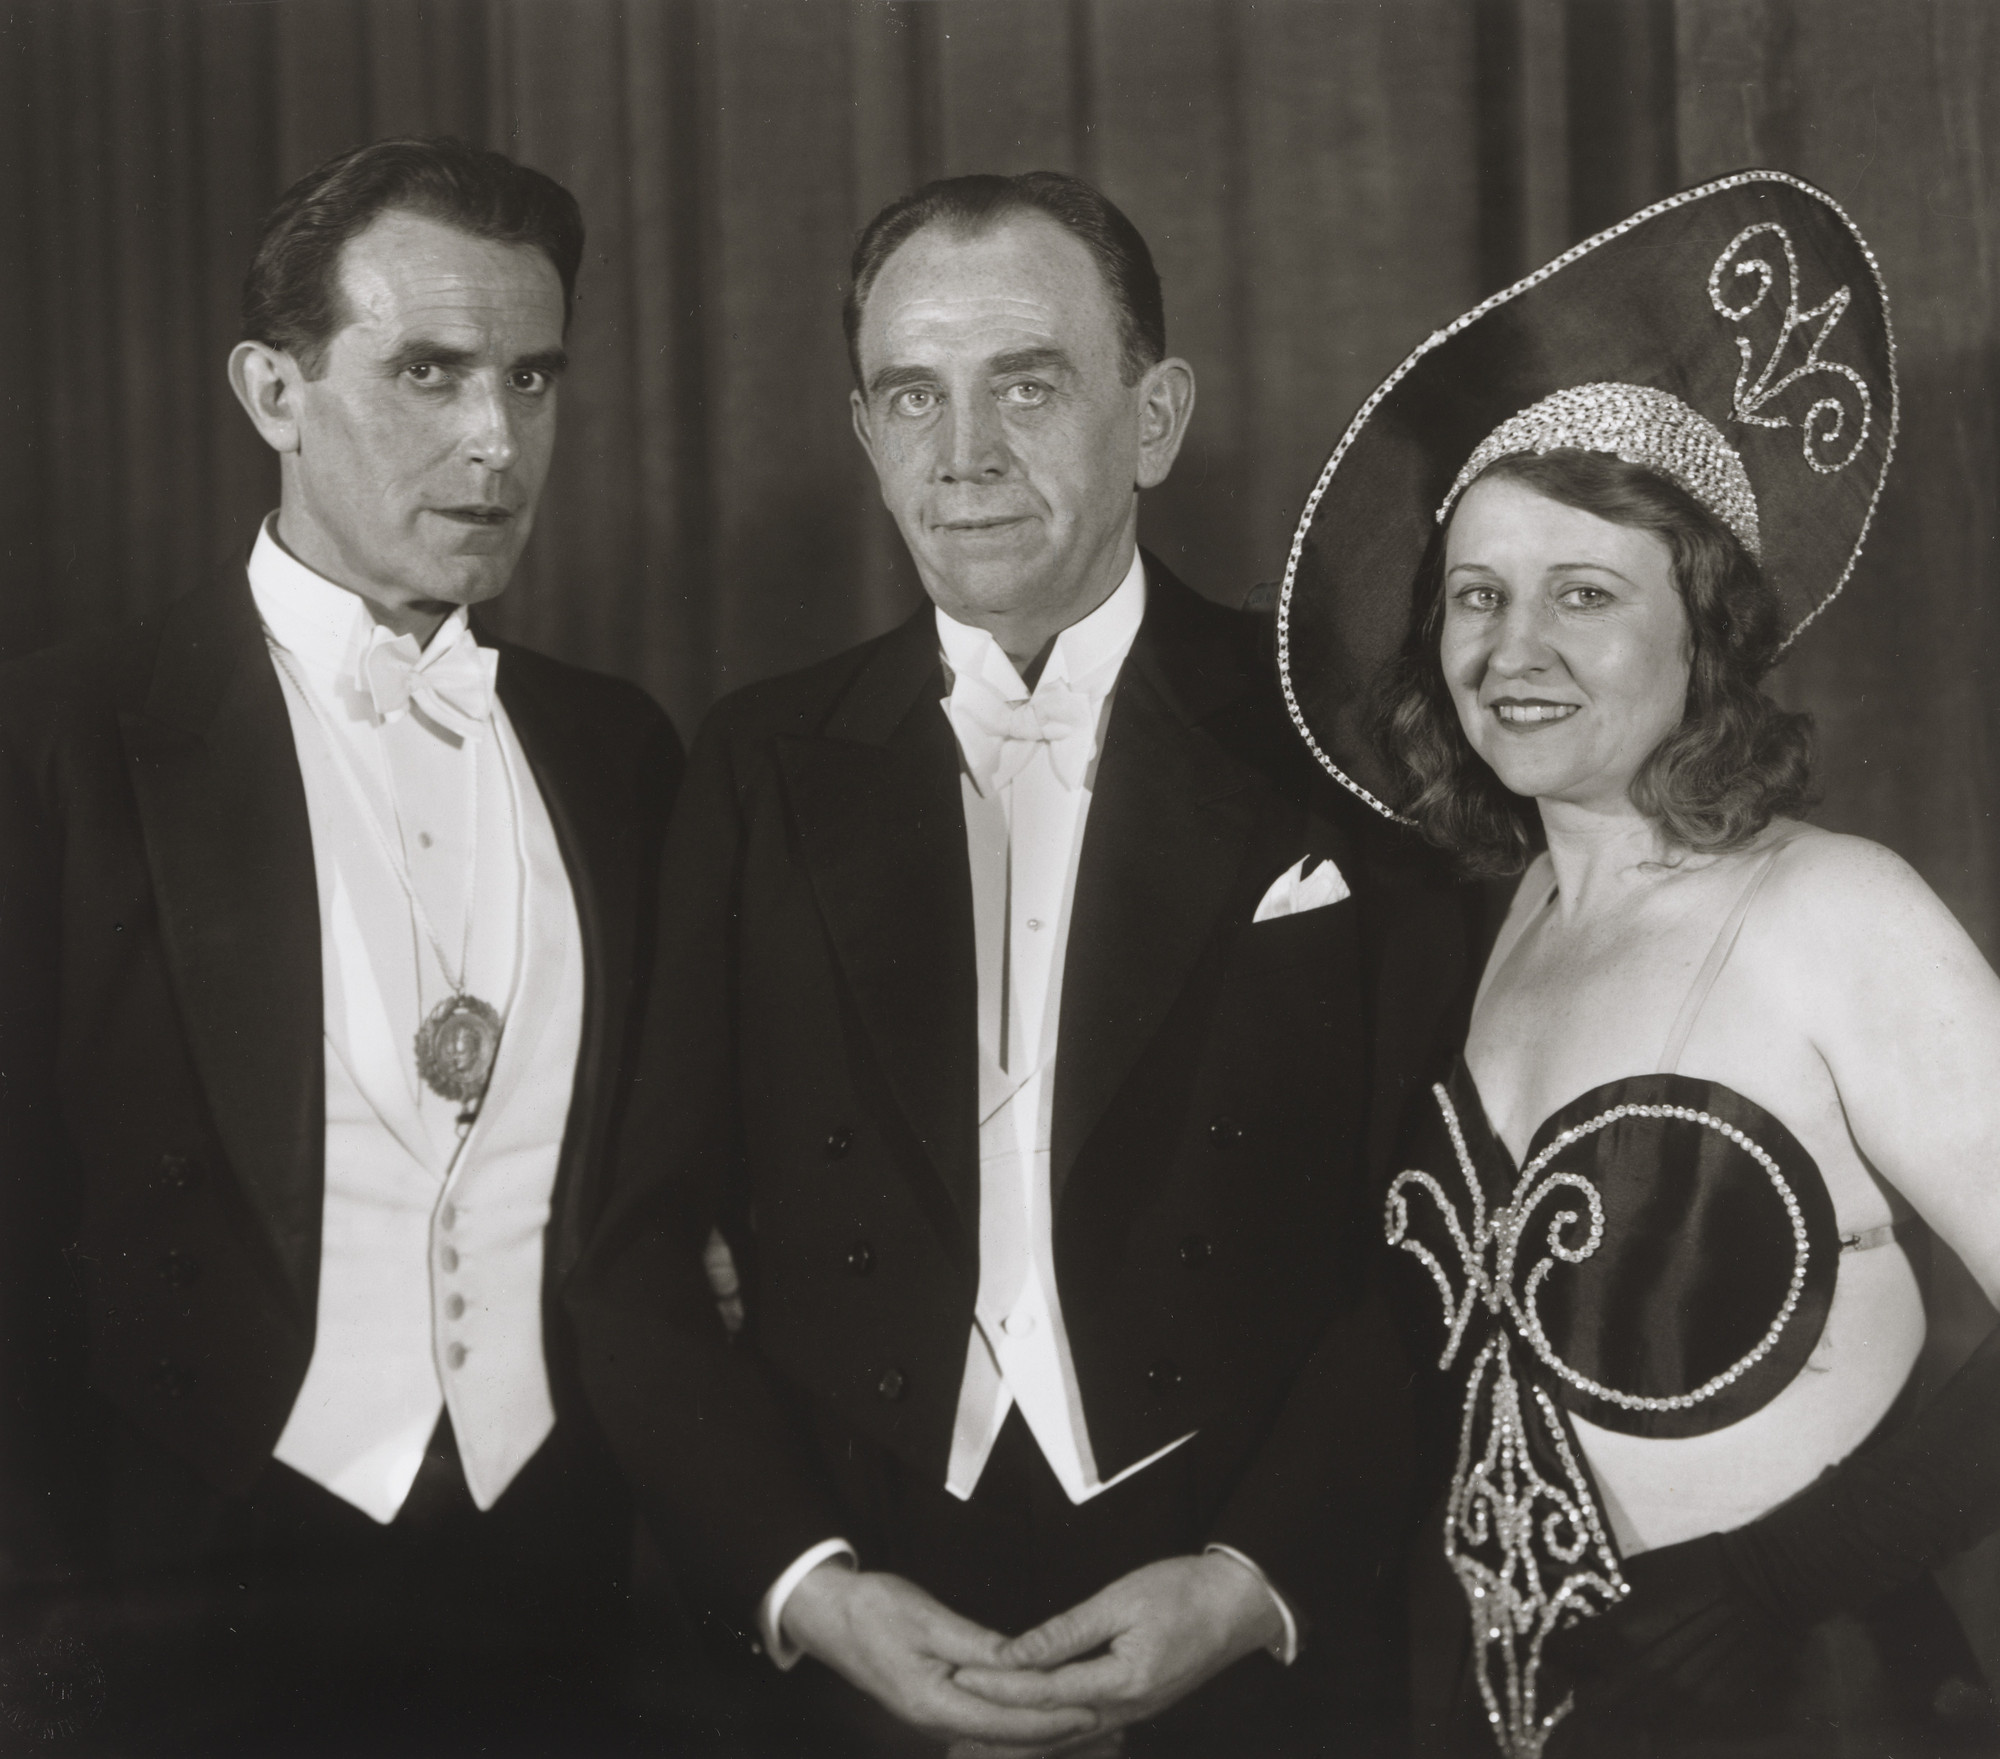 August Sander. Stage Performers [Carl de Vogt, Willi Ostermann, Trude Alex]. 1932